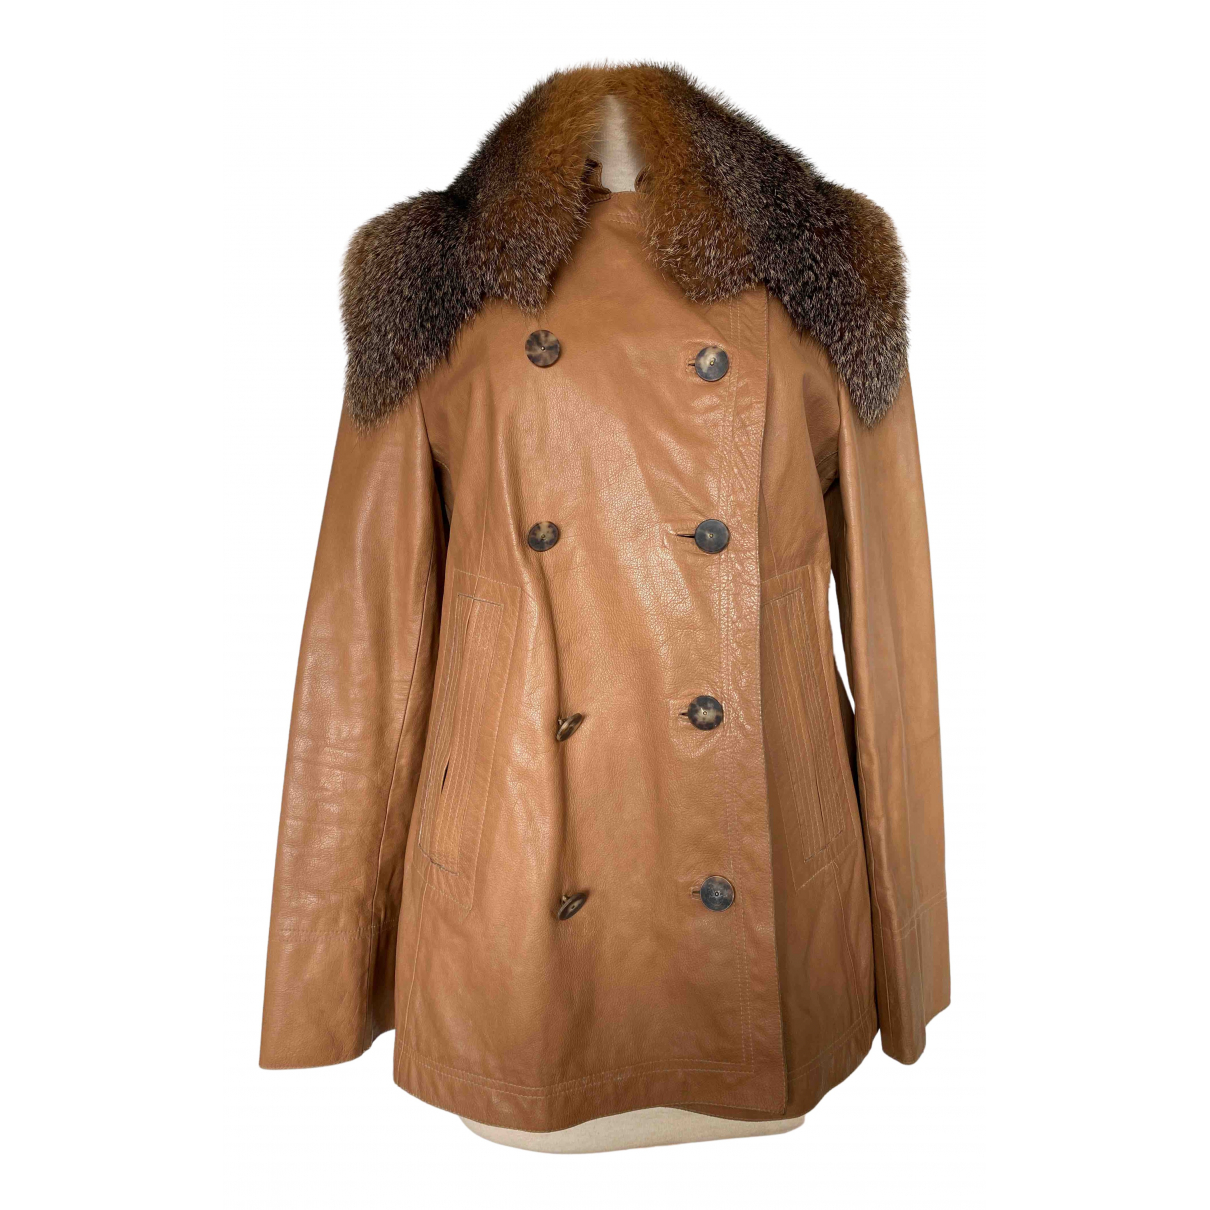 Marni N Camel Leather coat for Women 46 IT